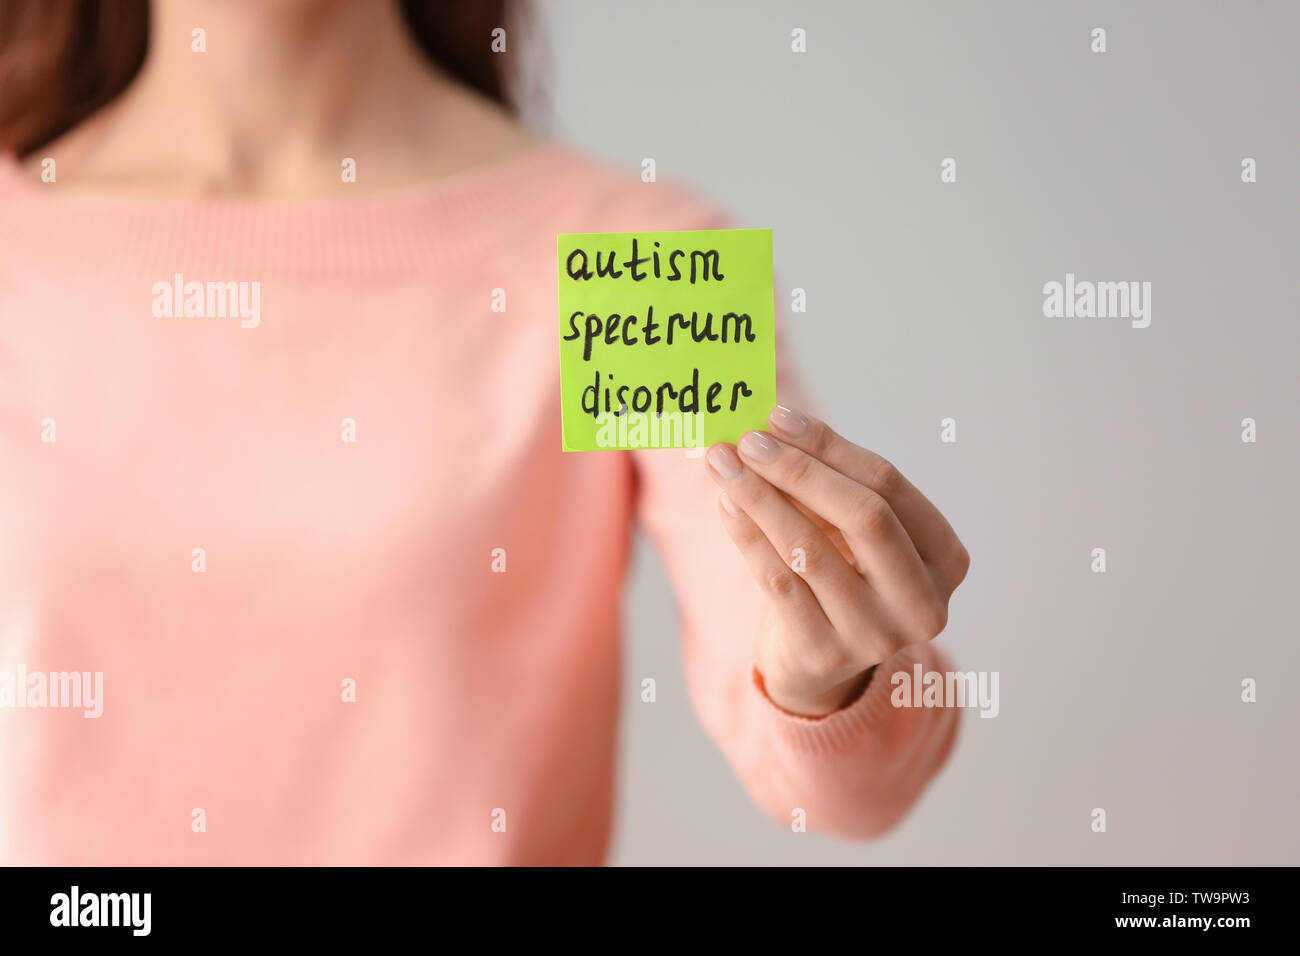 Woman holding note with phrase 'Autism spectrum disorder' on light background - Stock Image